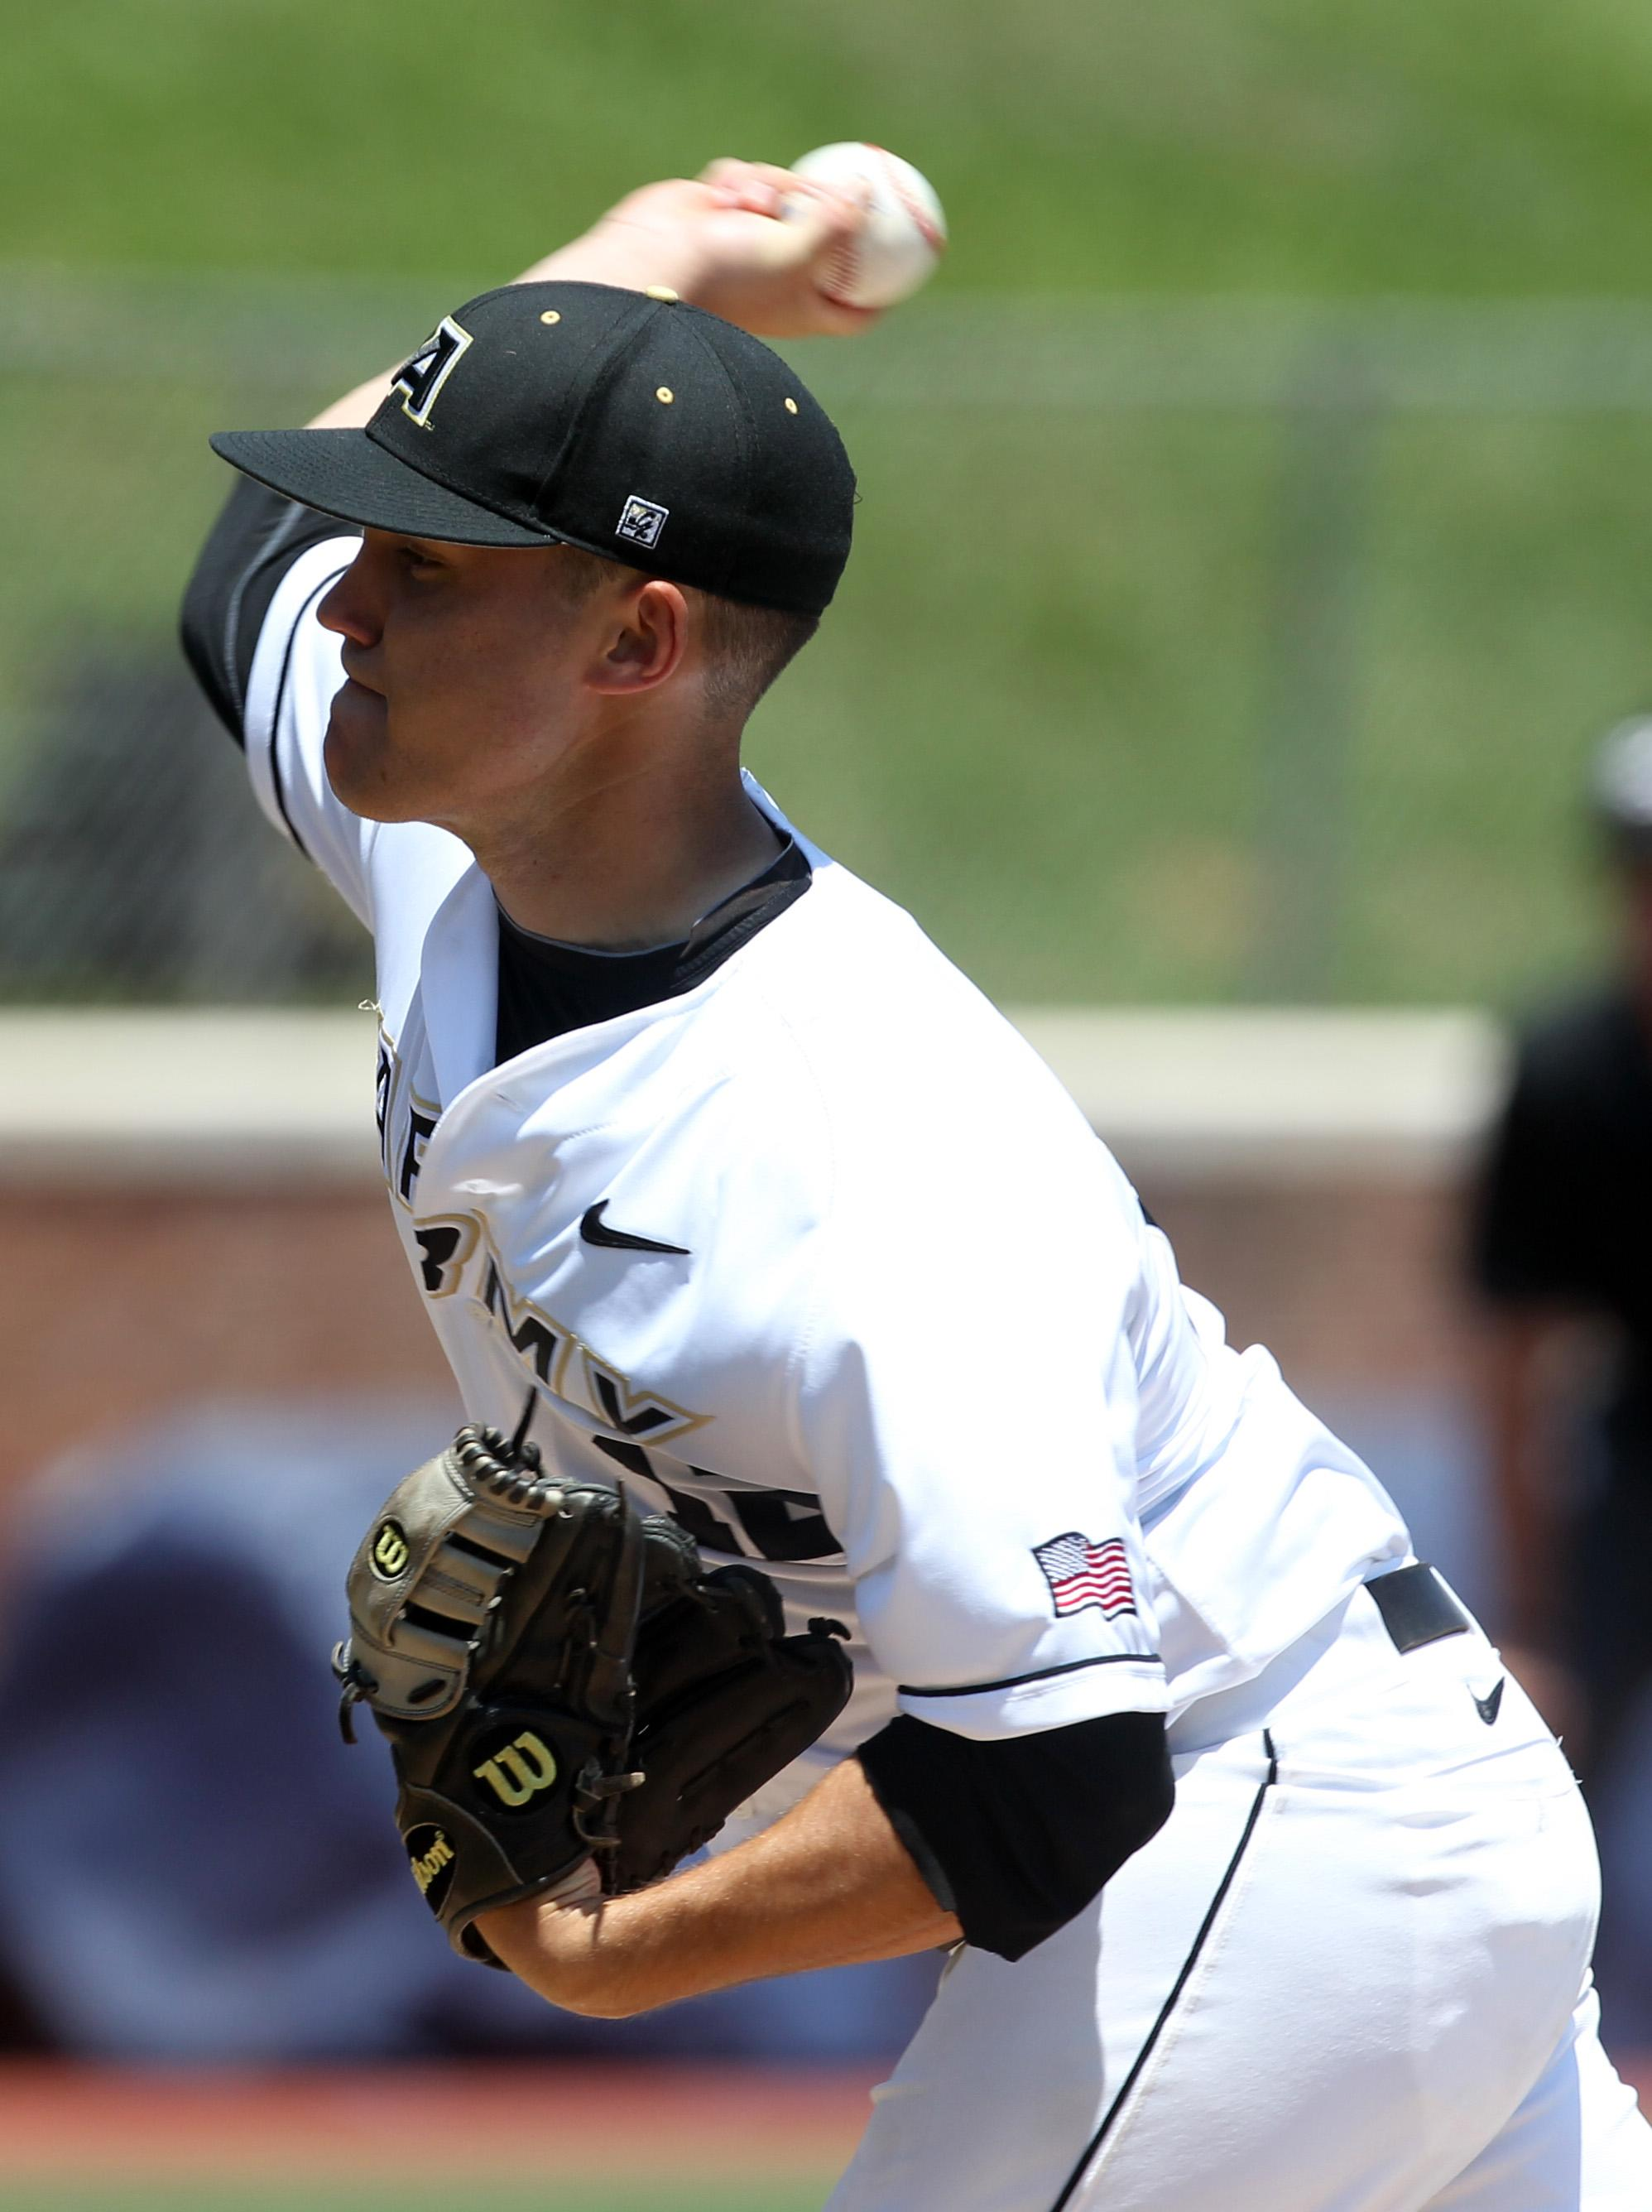 Army's ace surprised when told he struck out nation-best 21